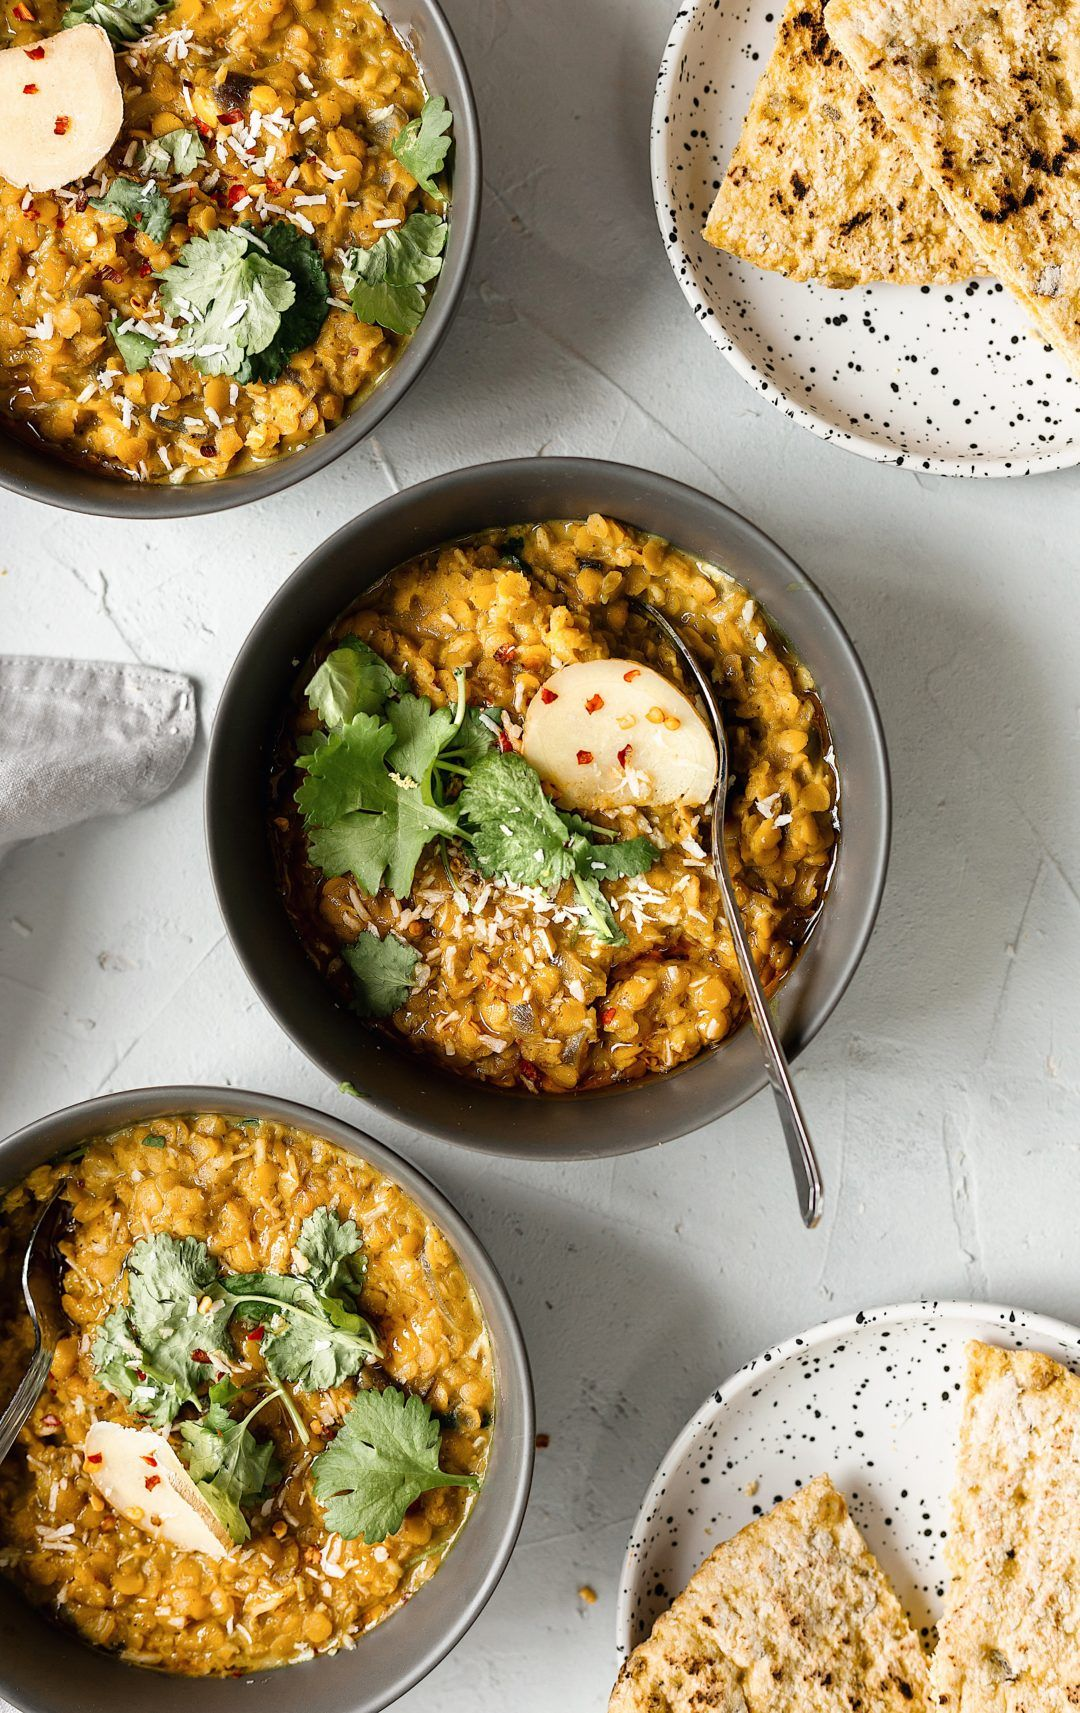 Vegan Creamy Red Lentil And Turmeric Dhal